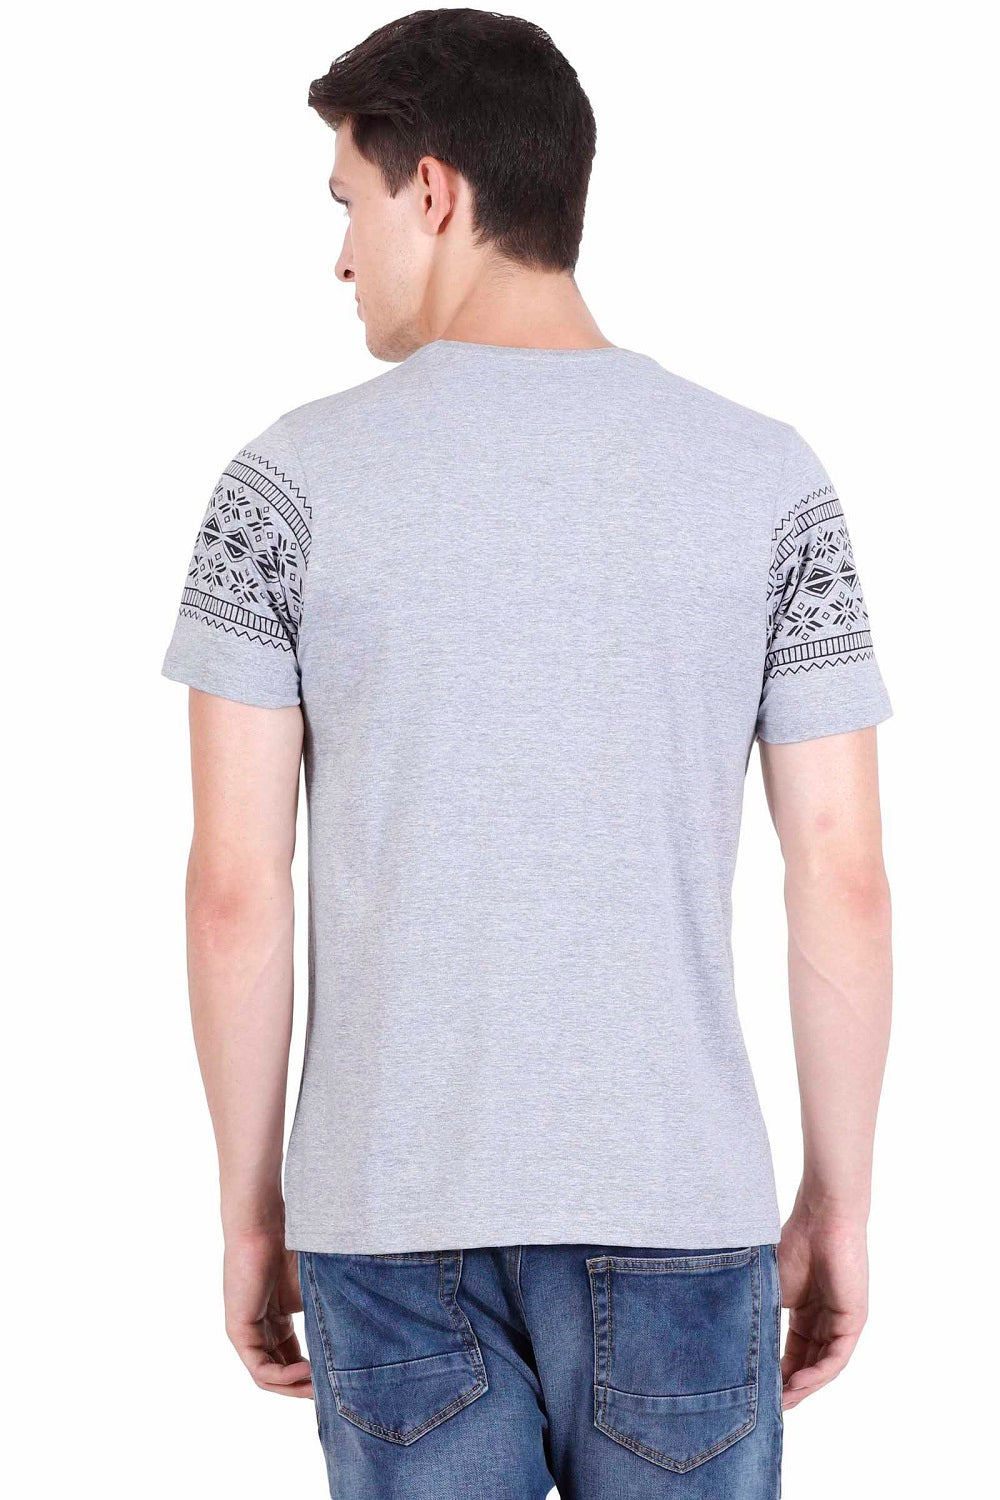 Hunt and Howe Men's Geometric Print T-Shirt